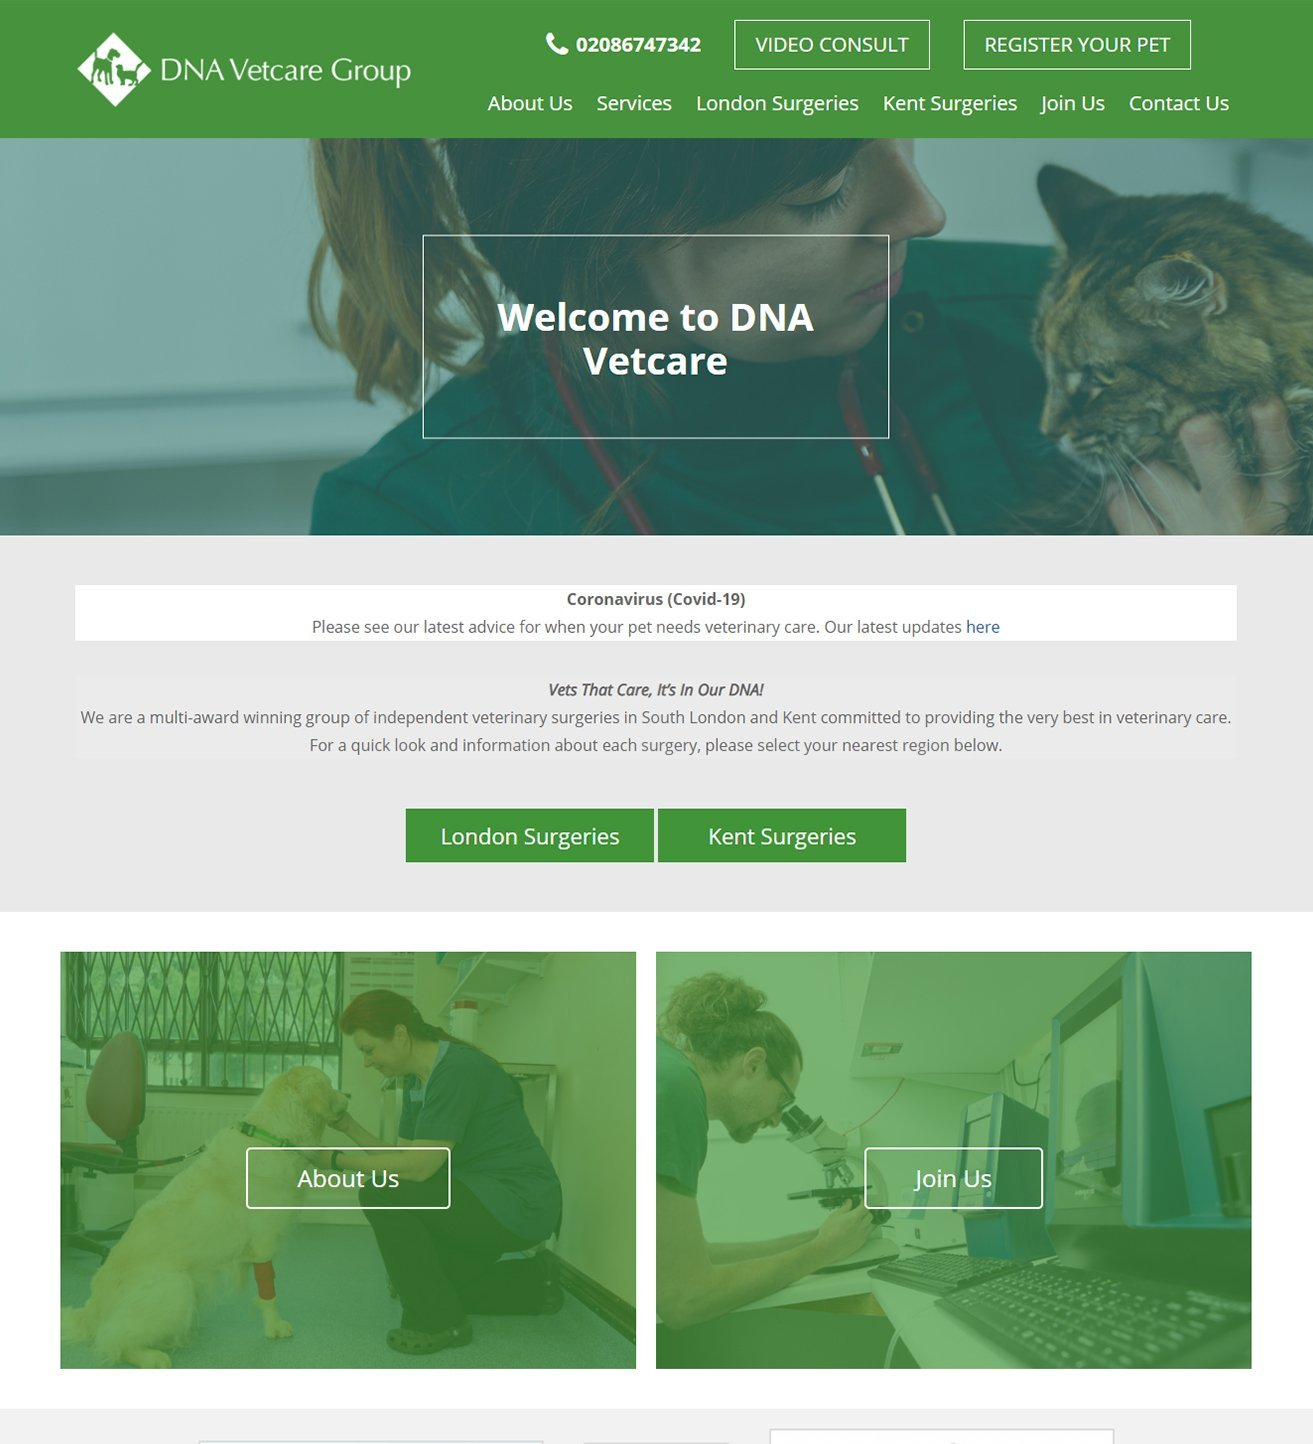 dna vetcare group, websites for vets